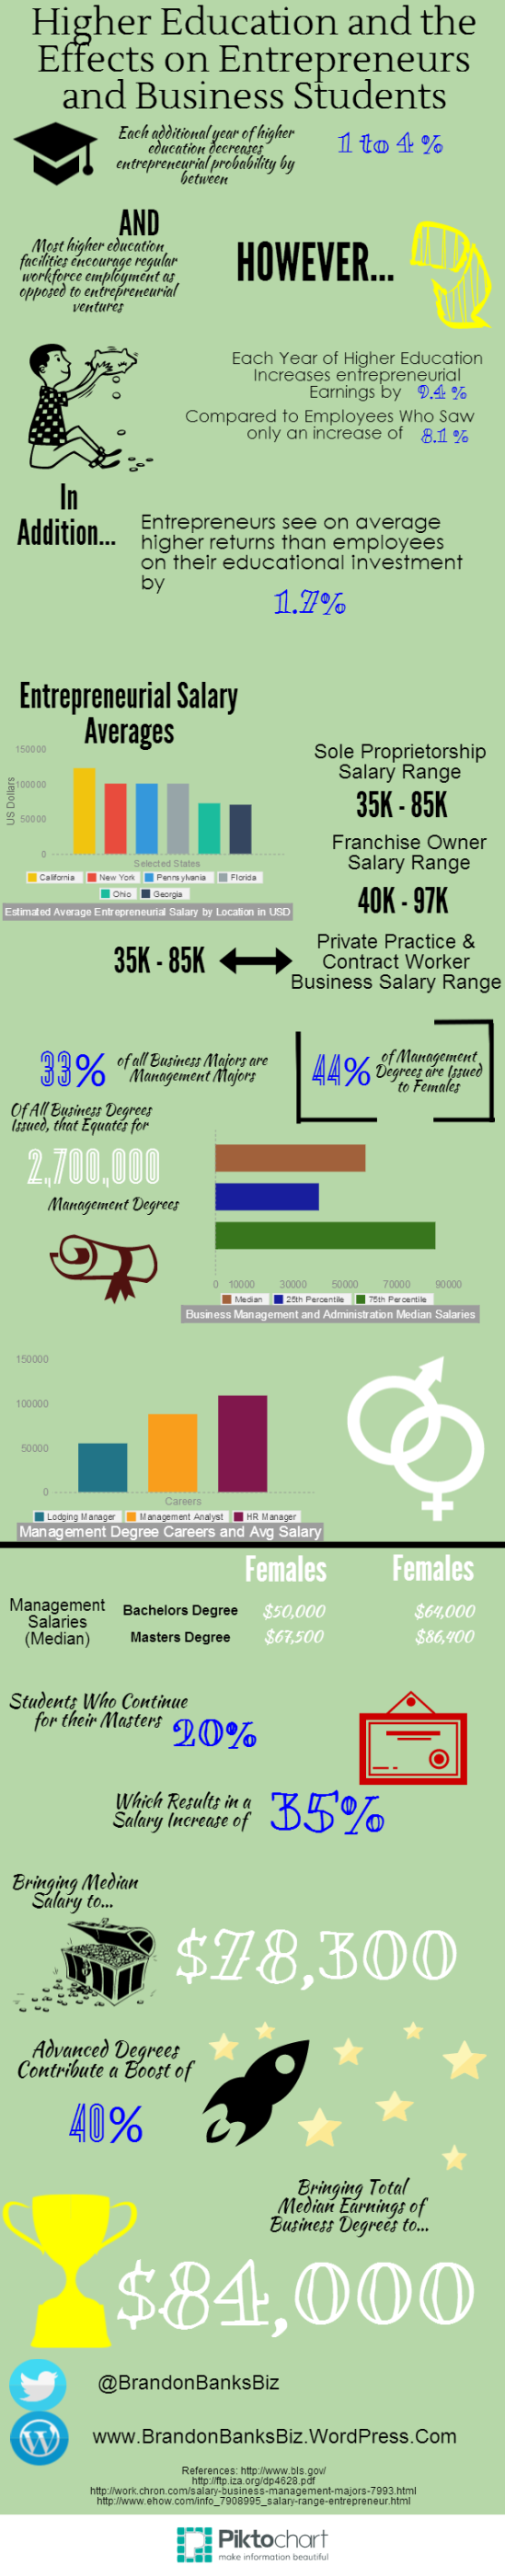 Higher Education and the Effects on Entrepreneurs and Business Students (Infographic)